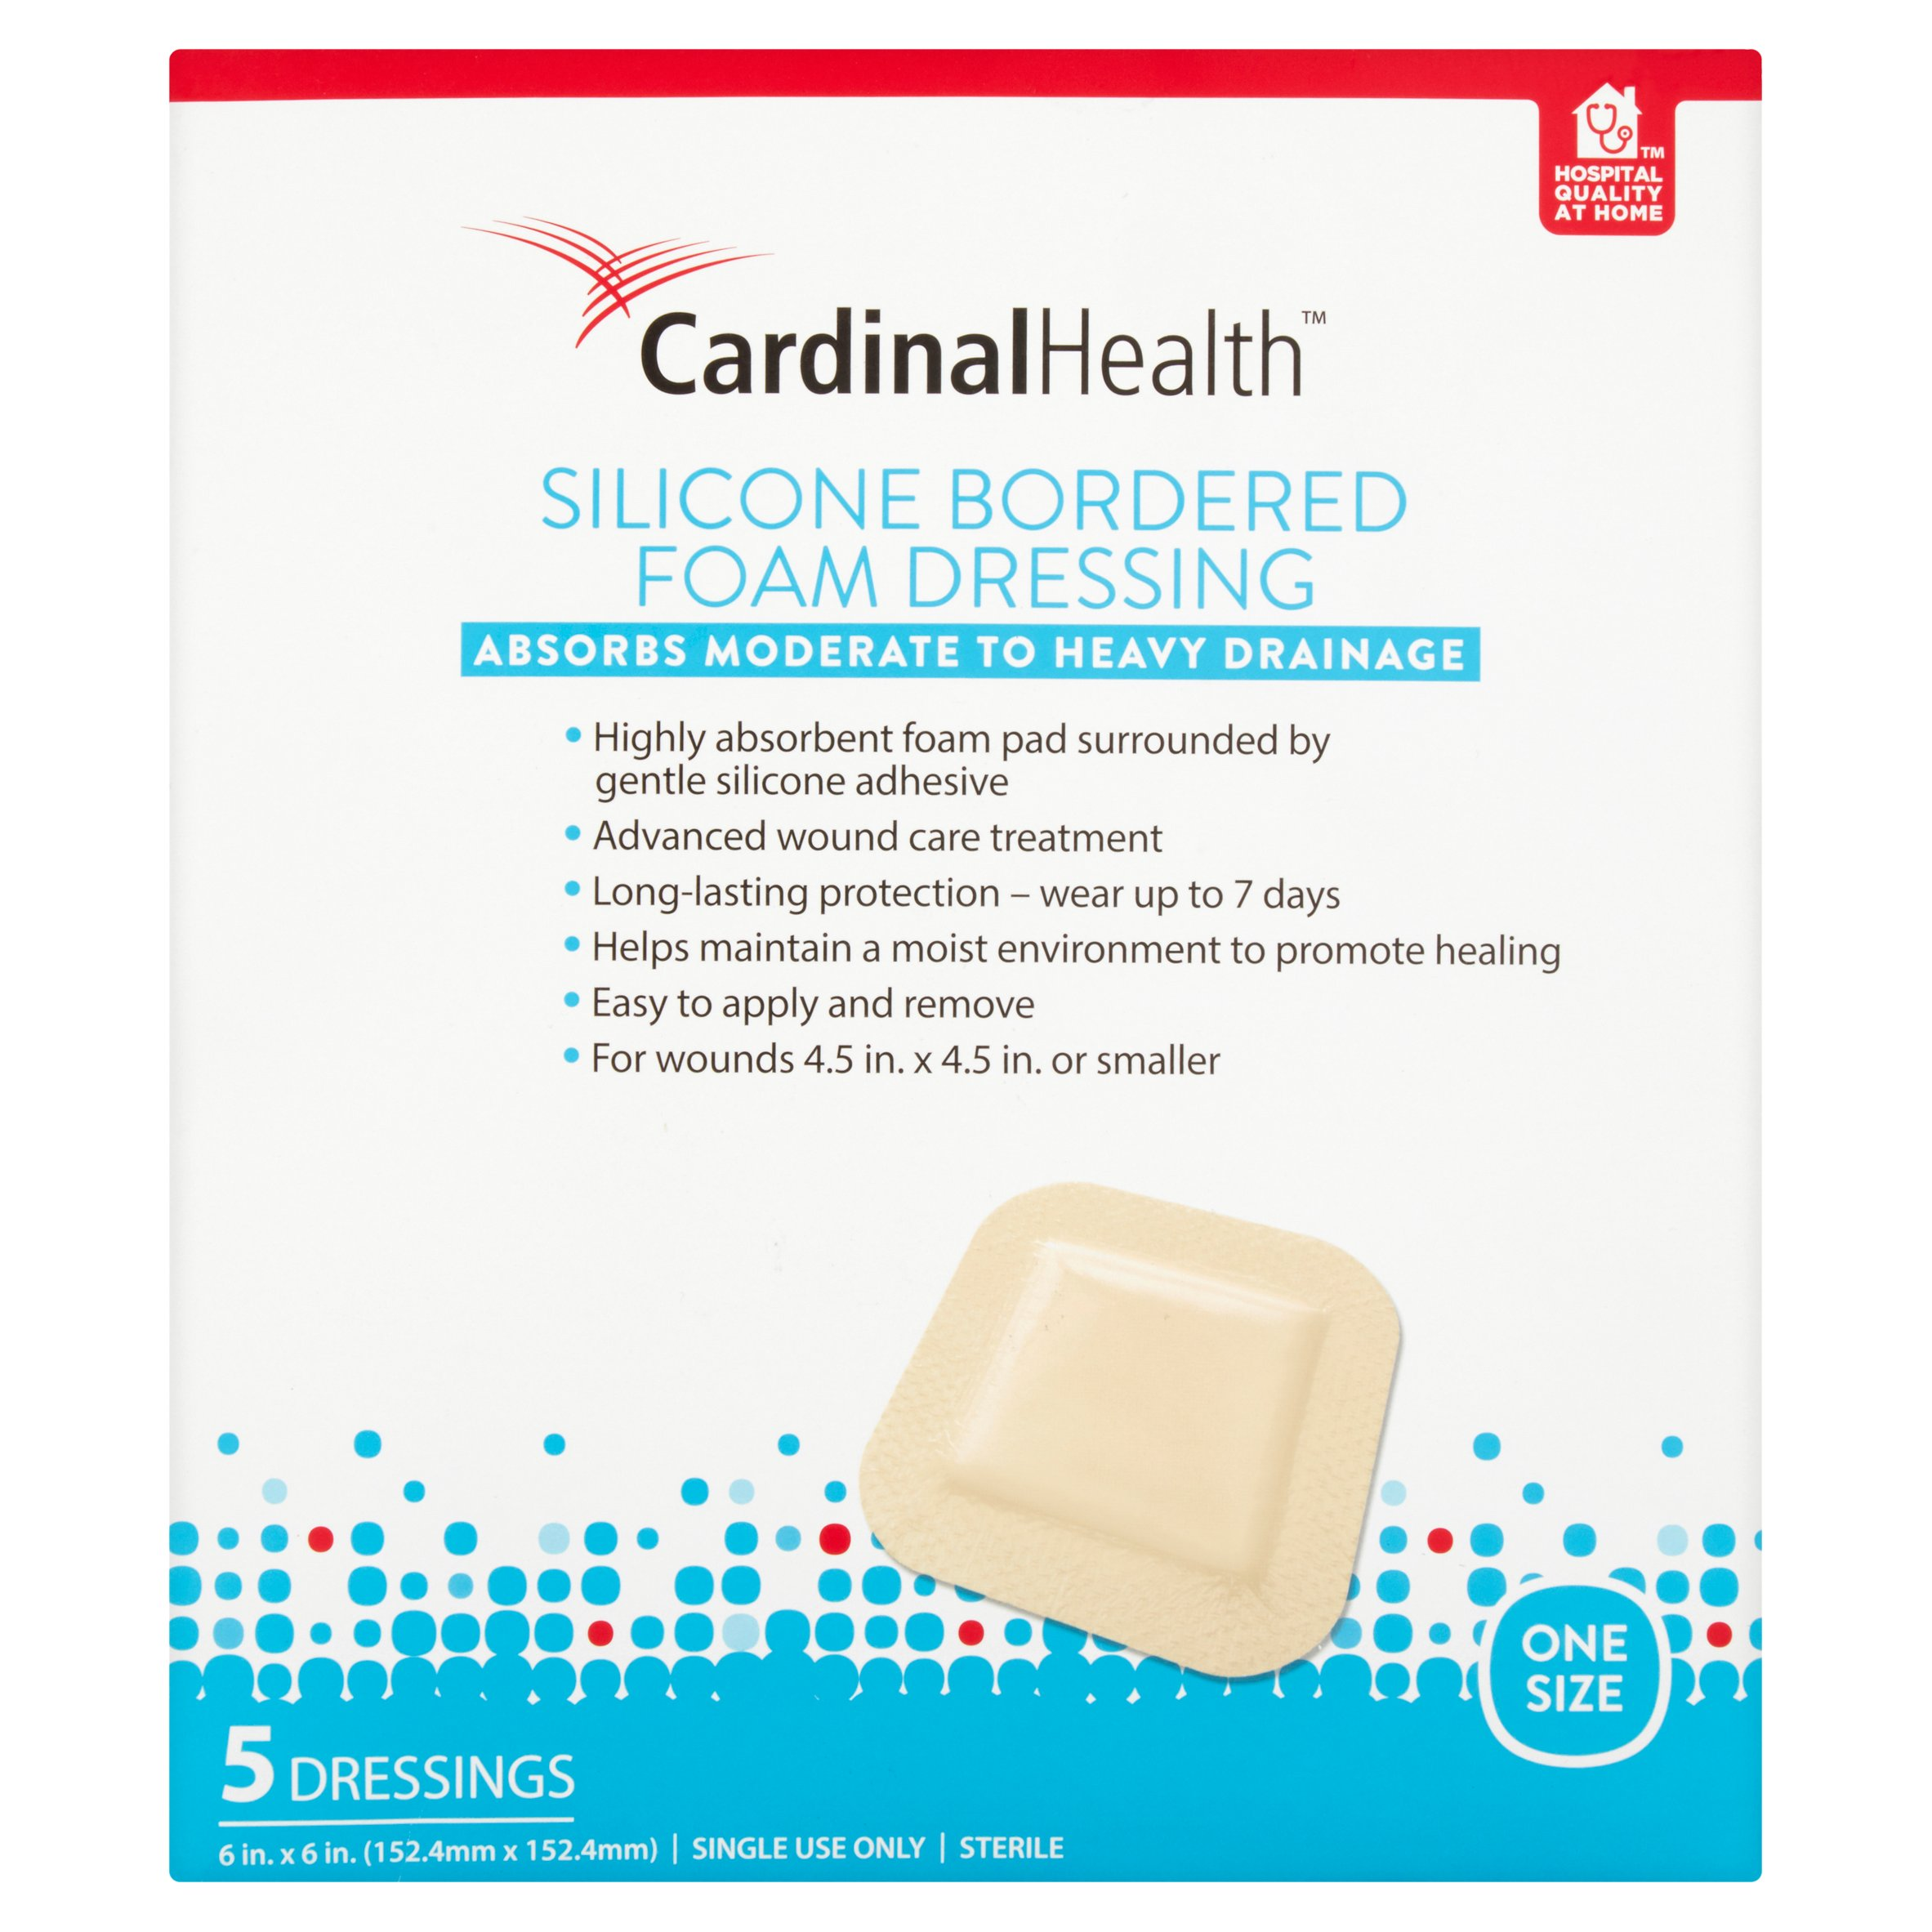 Cardinal Health One Size Silicone Bordered Foam Dressings, 5 count